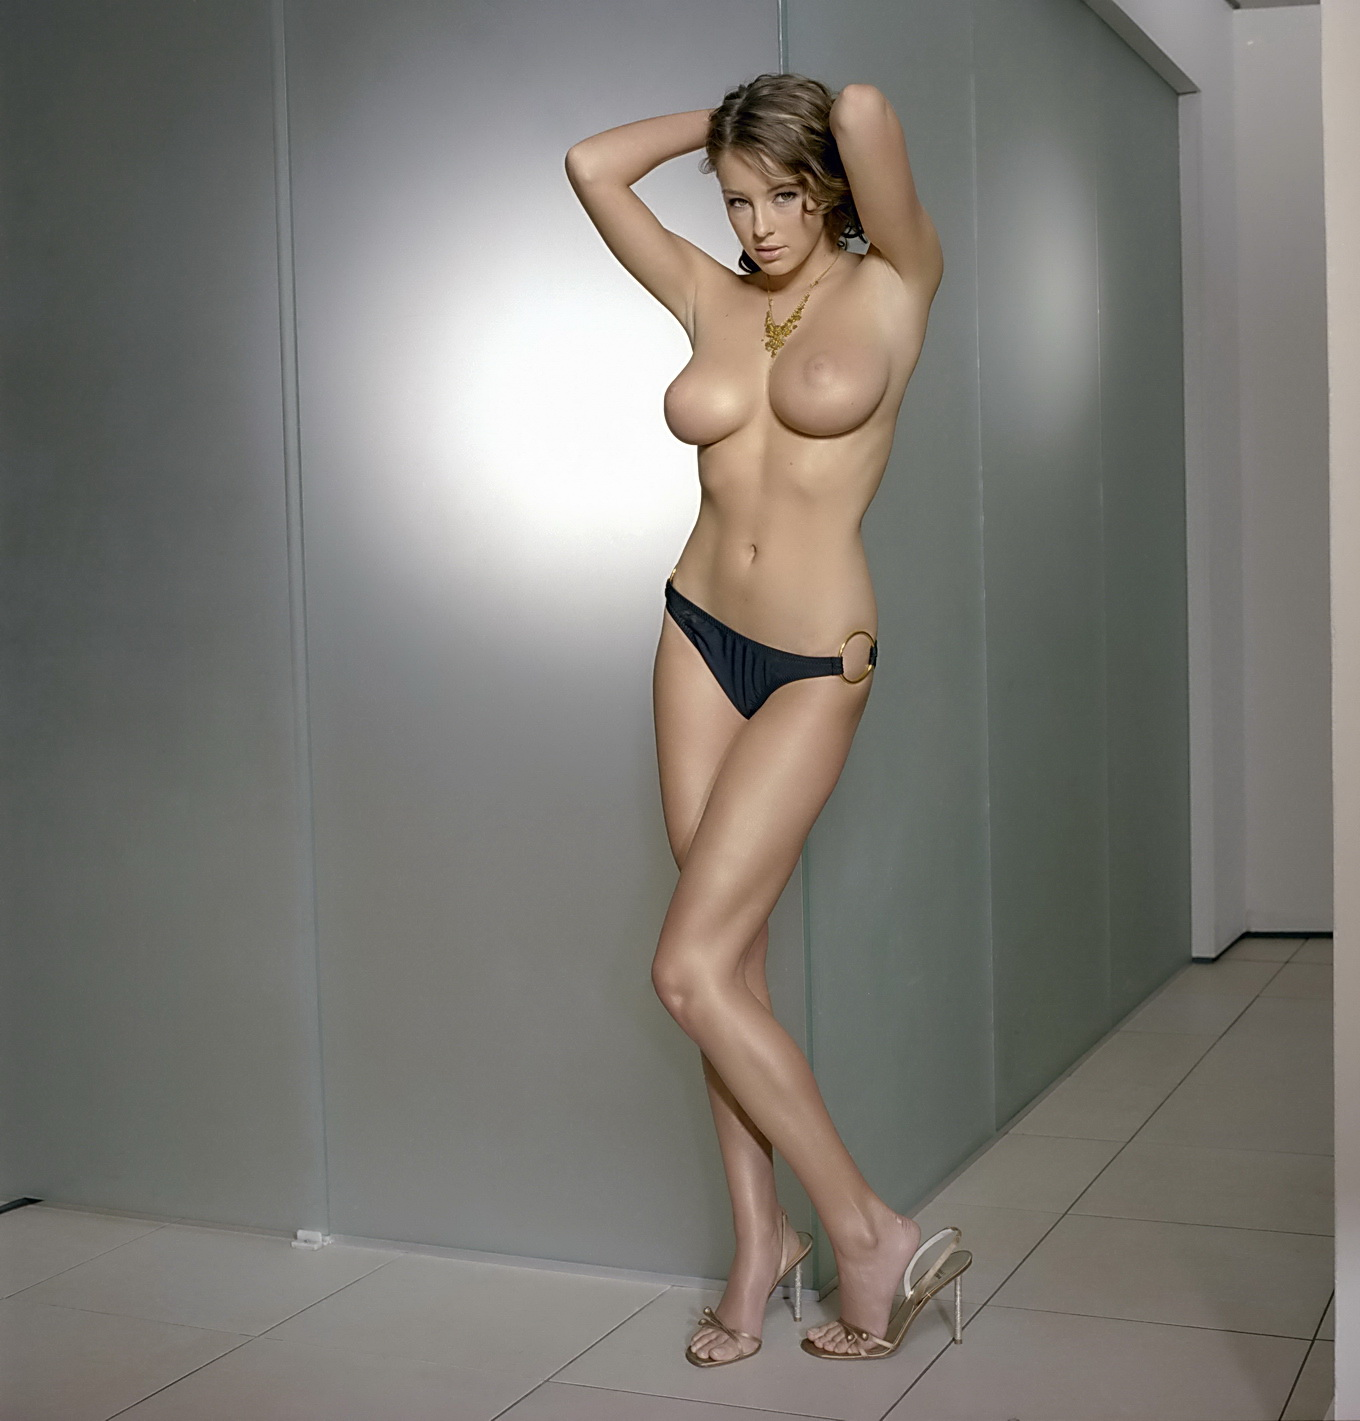 Speaking, opinion, Keeley hazell lingerie there